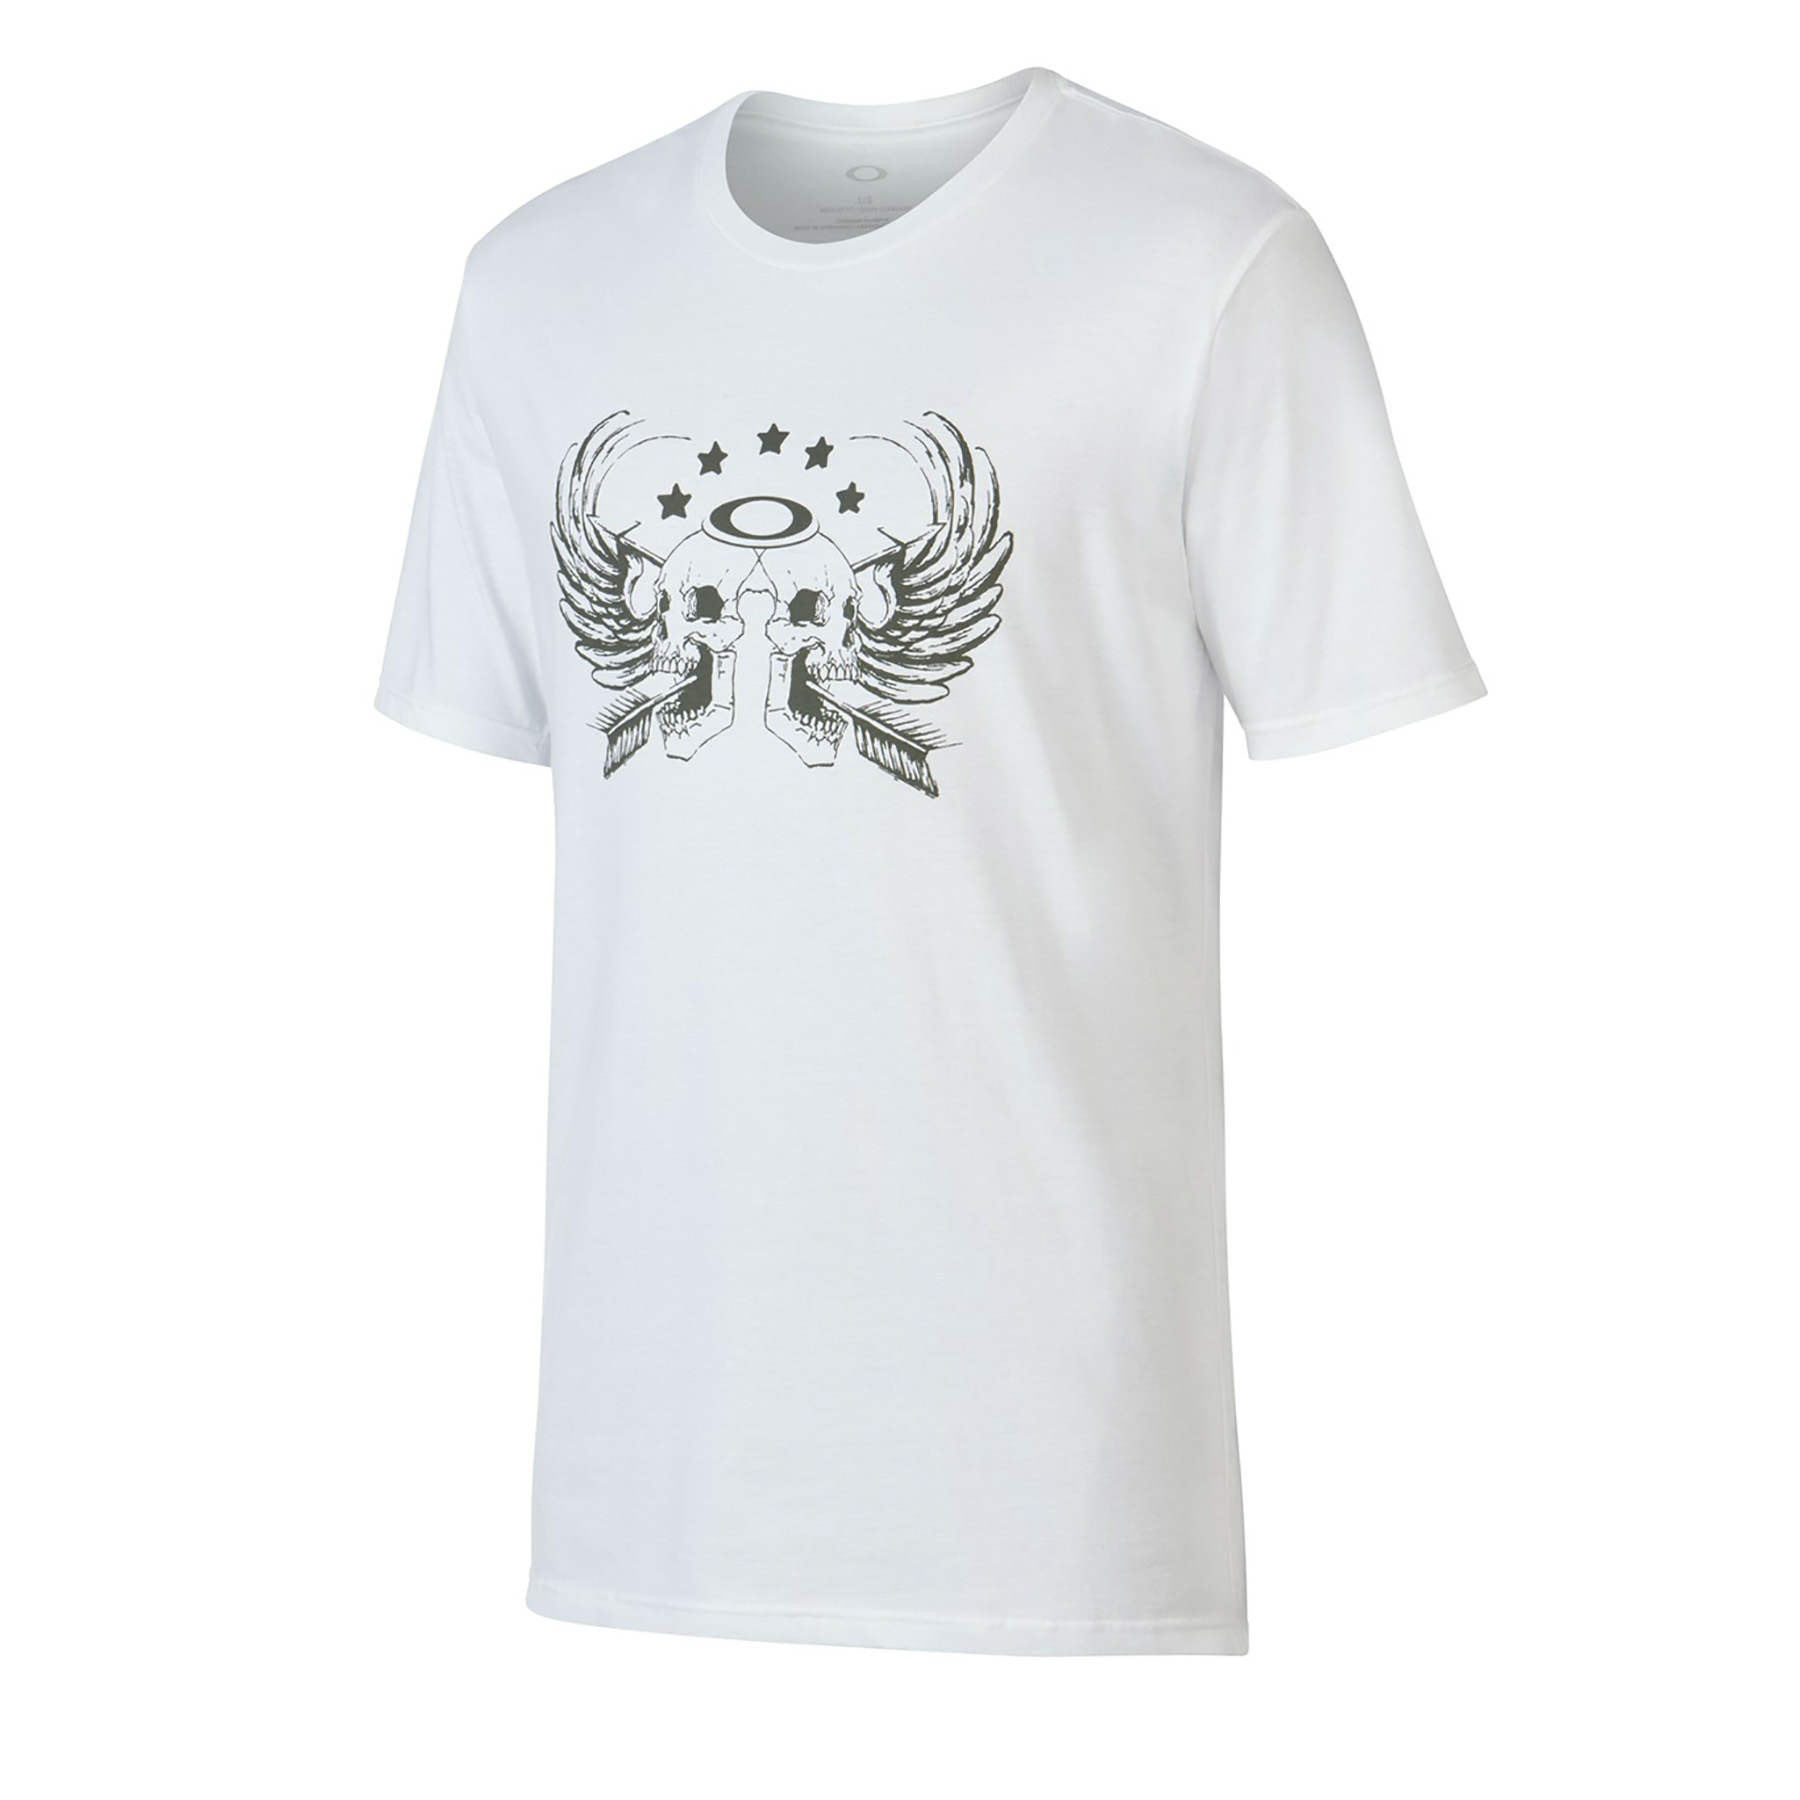 Oakley Skull Wings T-Shirt (White)